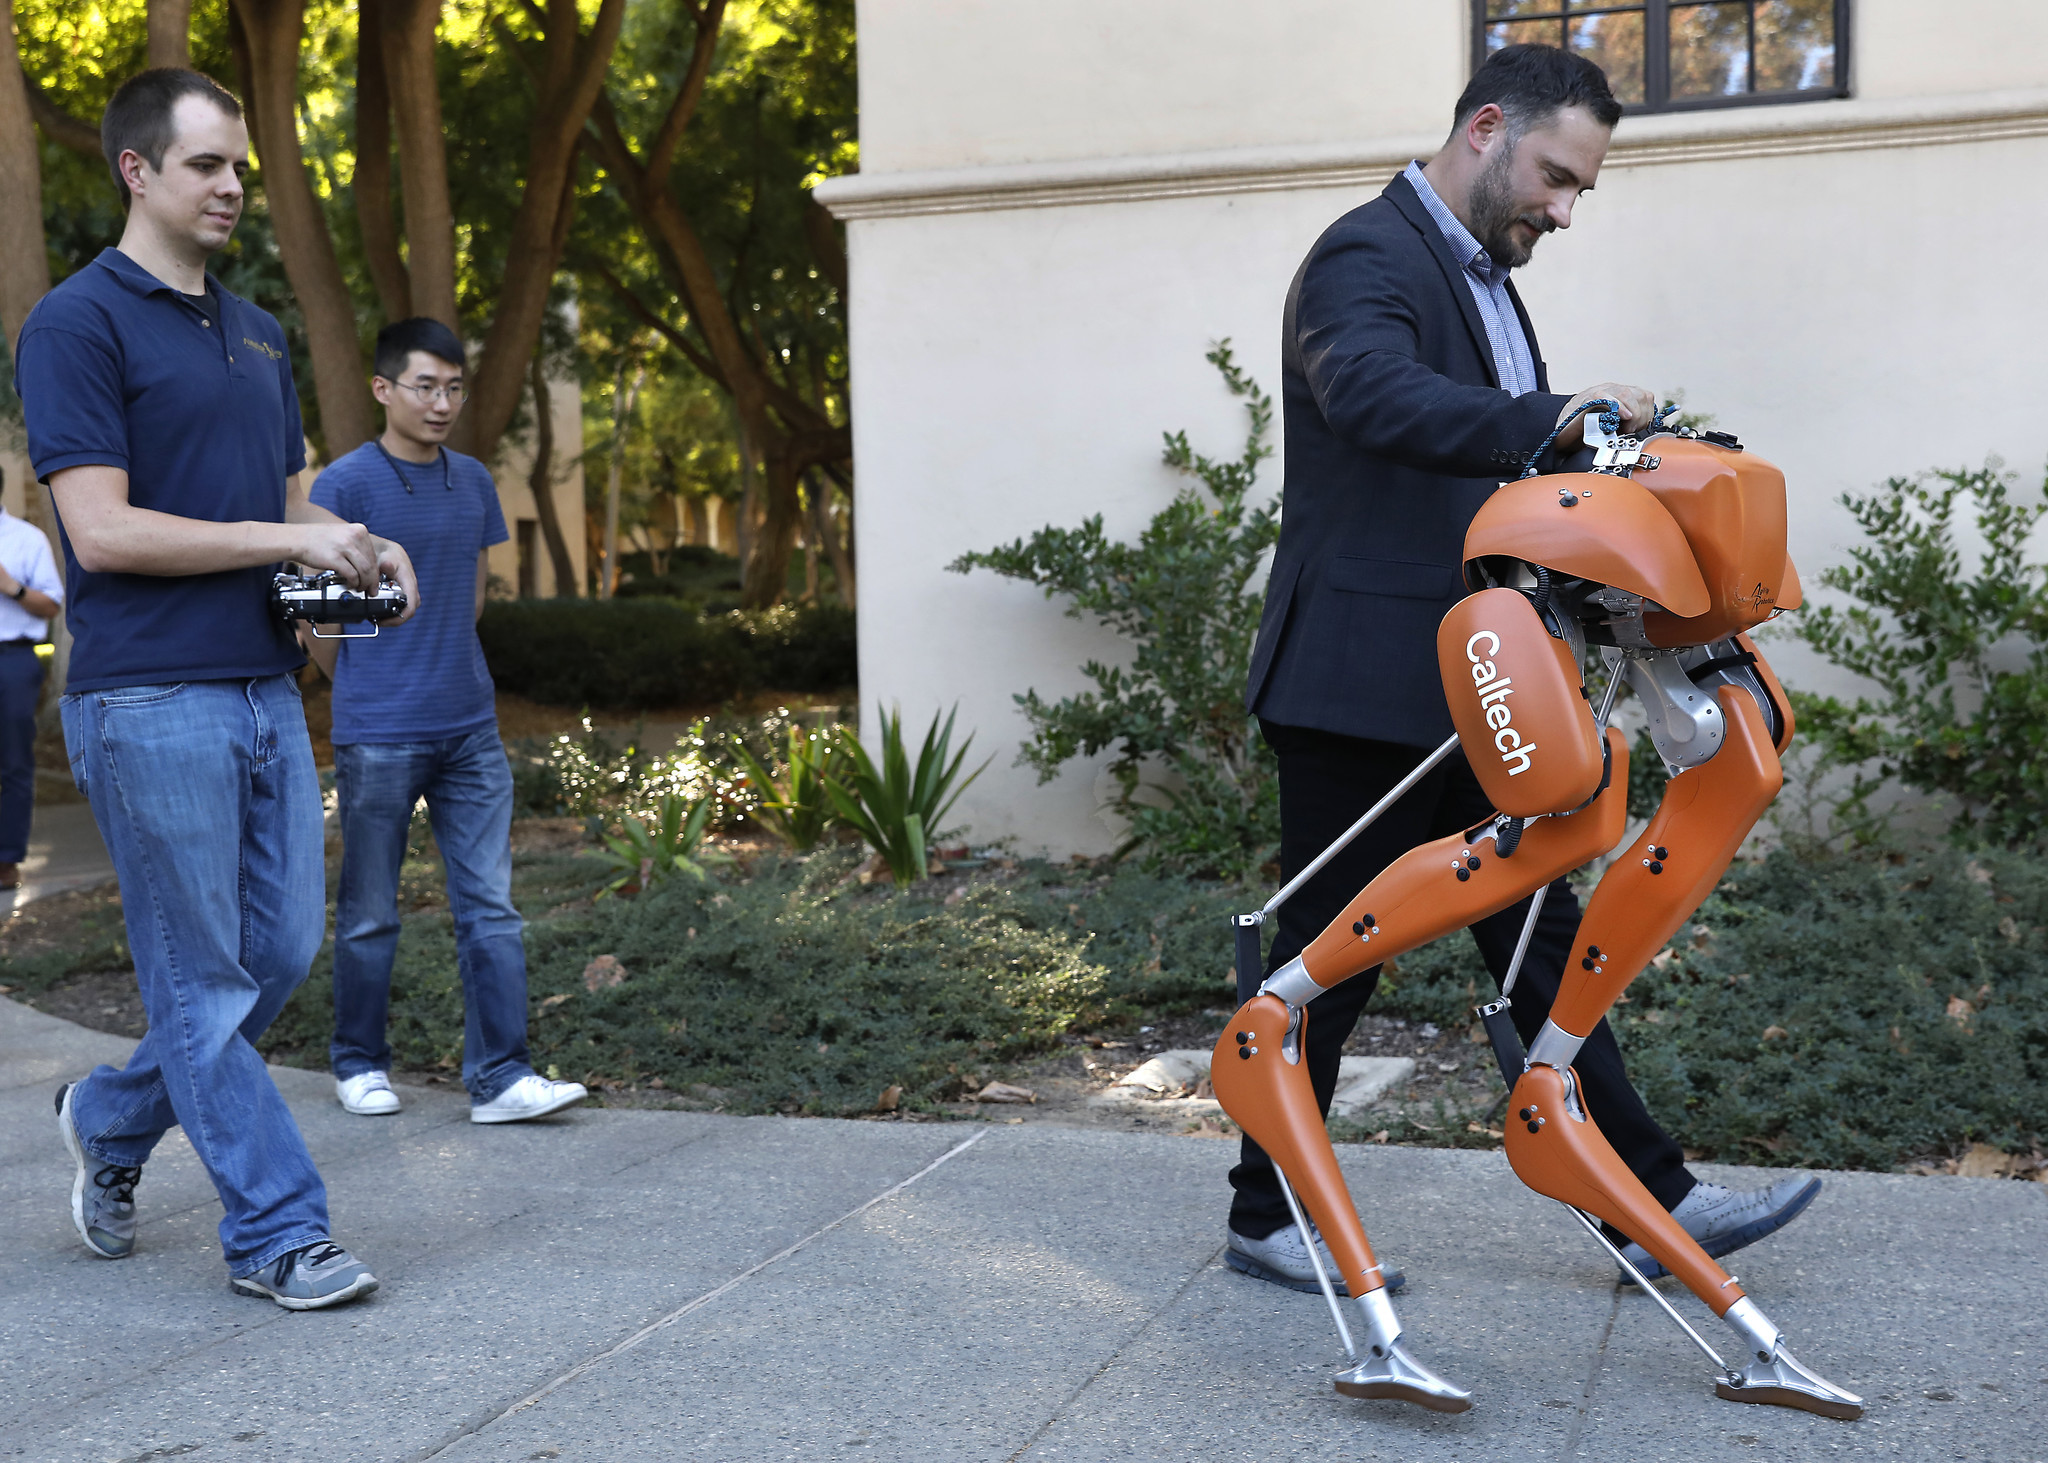 Caltech professor Aaron Ames walks on campus alongside Cassie, a semi-autonomous robot, as doctoral student Jacob Reher, left, controls the direction that Cassie travels. The robot's balance and gait are autonomous.